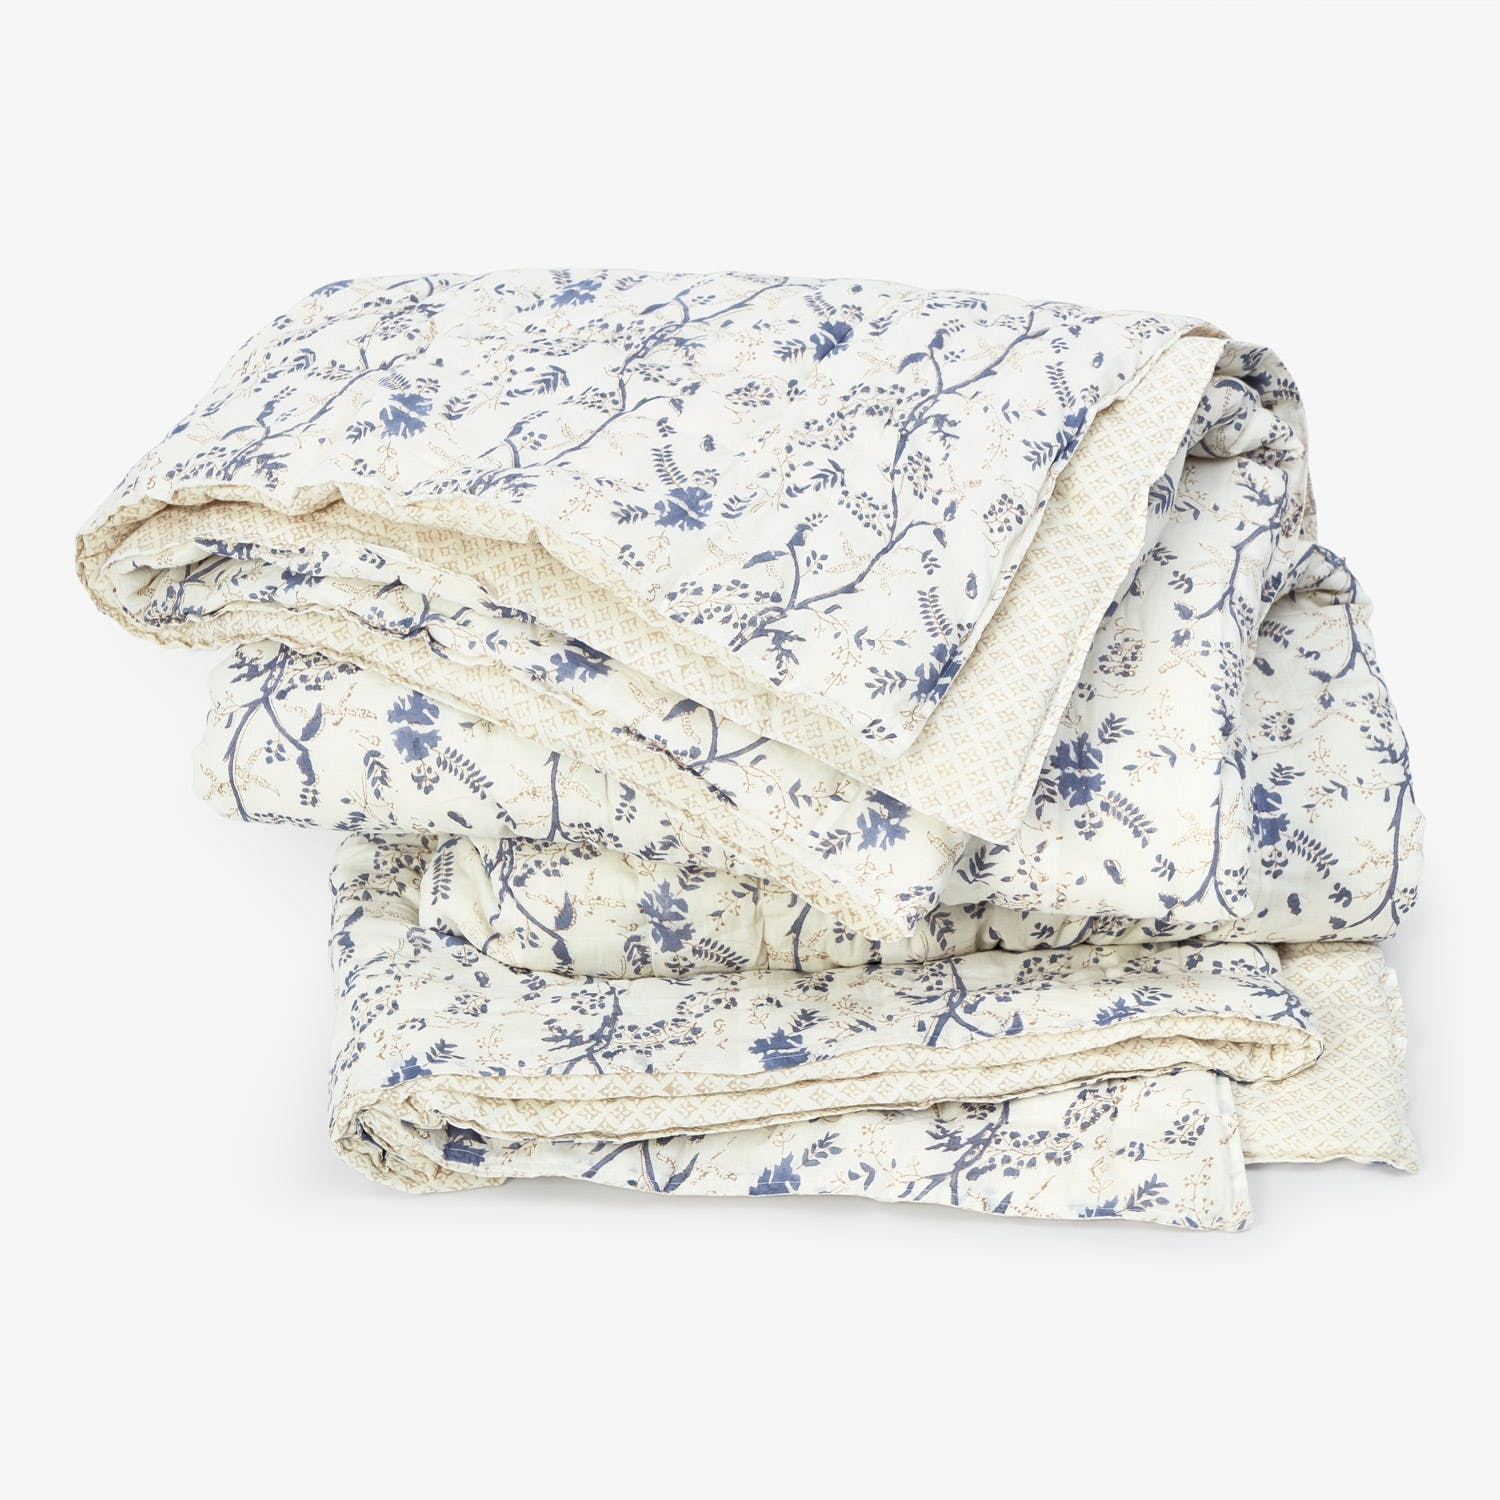 Kerry Cassill King Jasmine Cotton Voile Quilt Blue